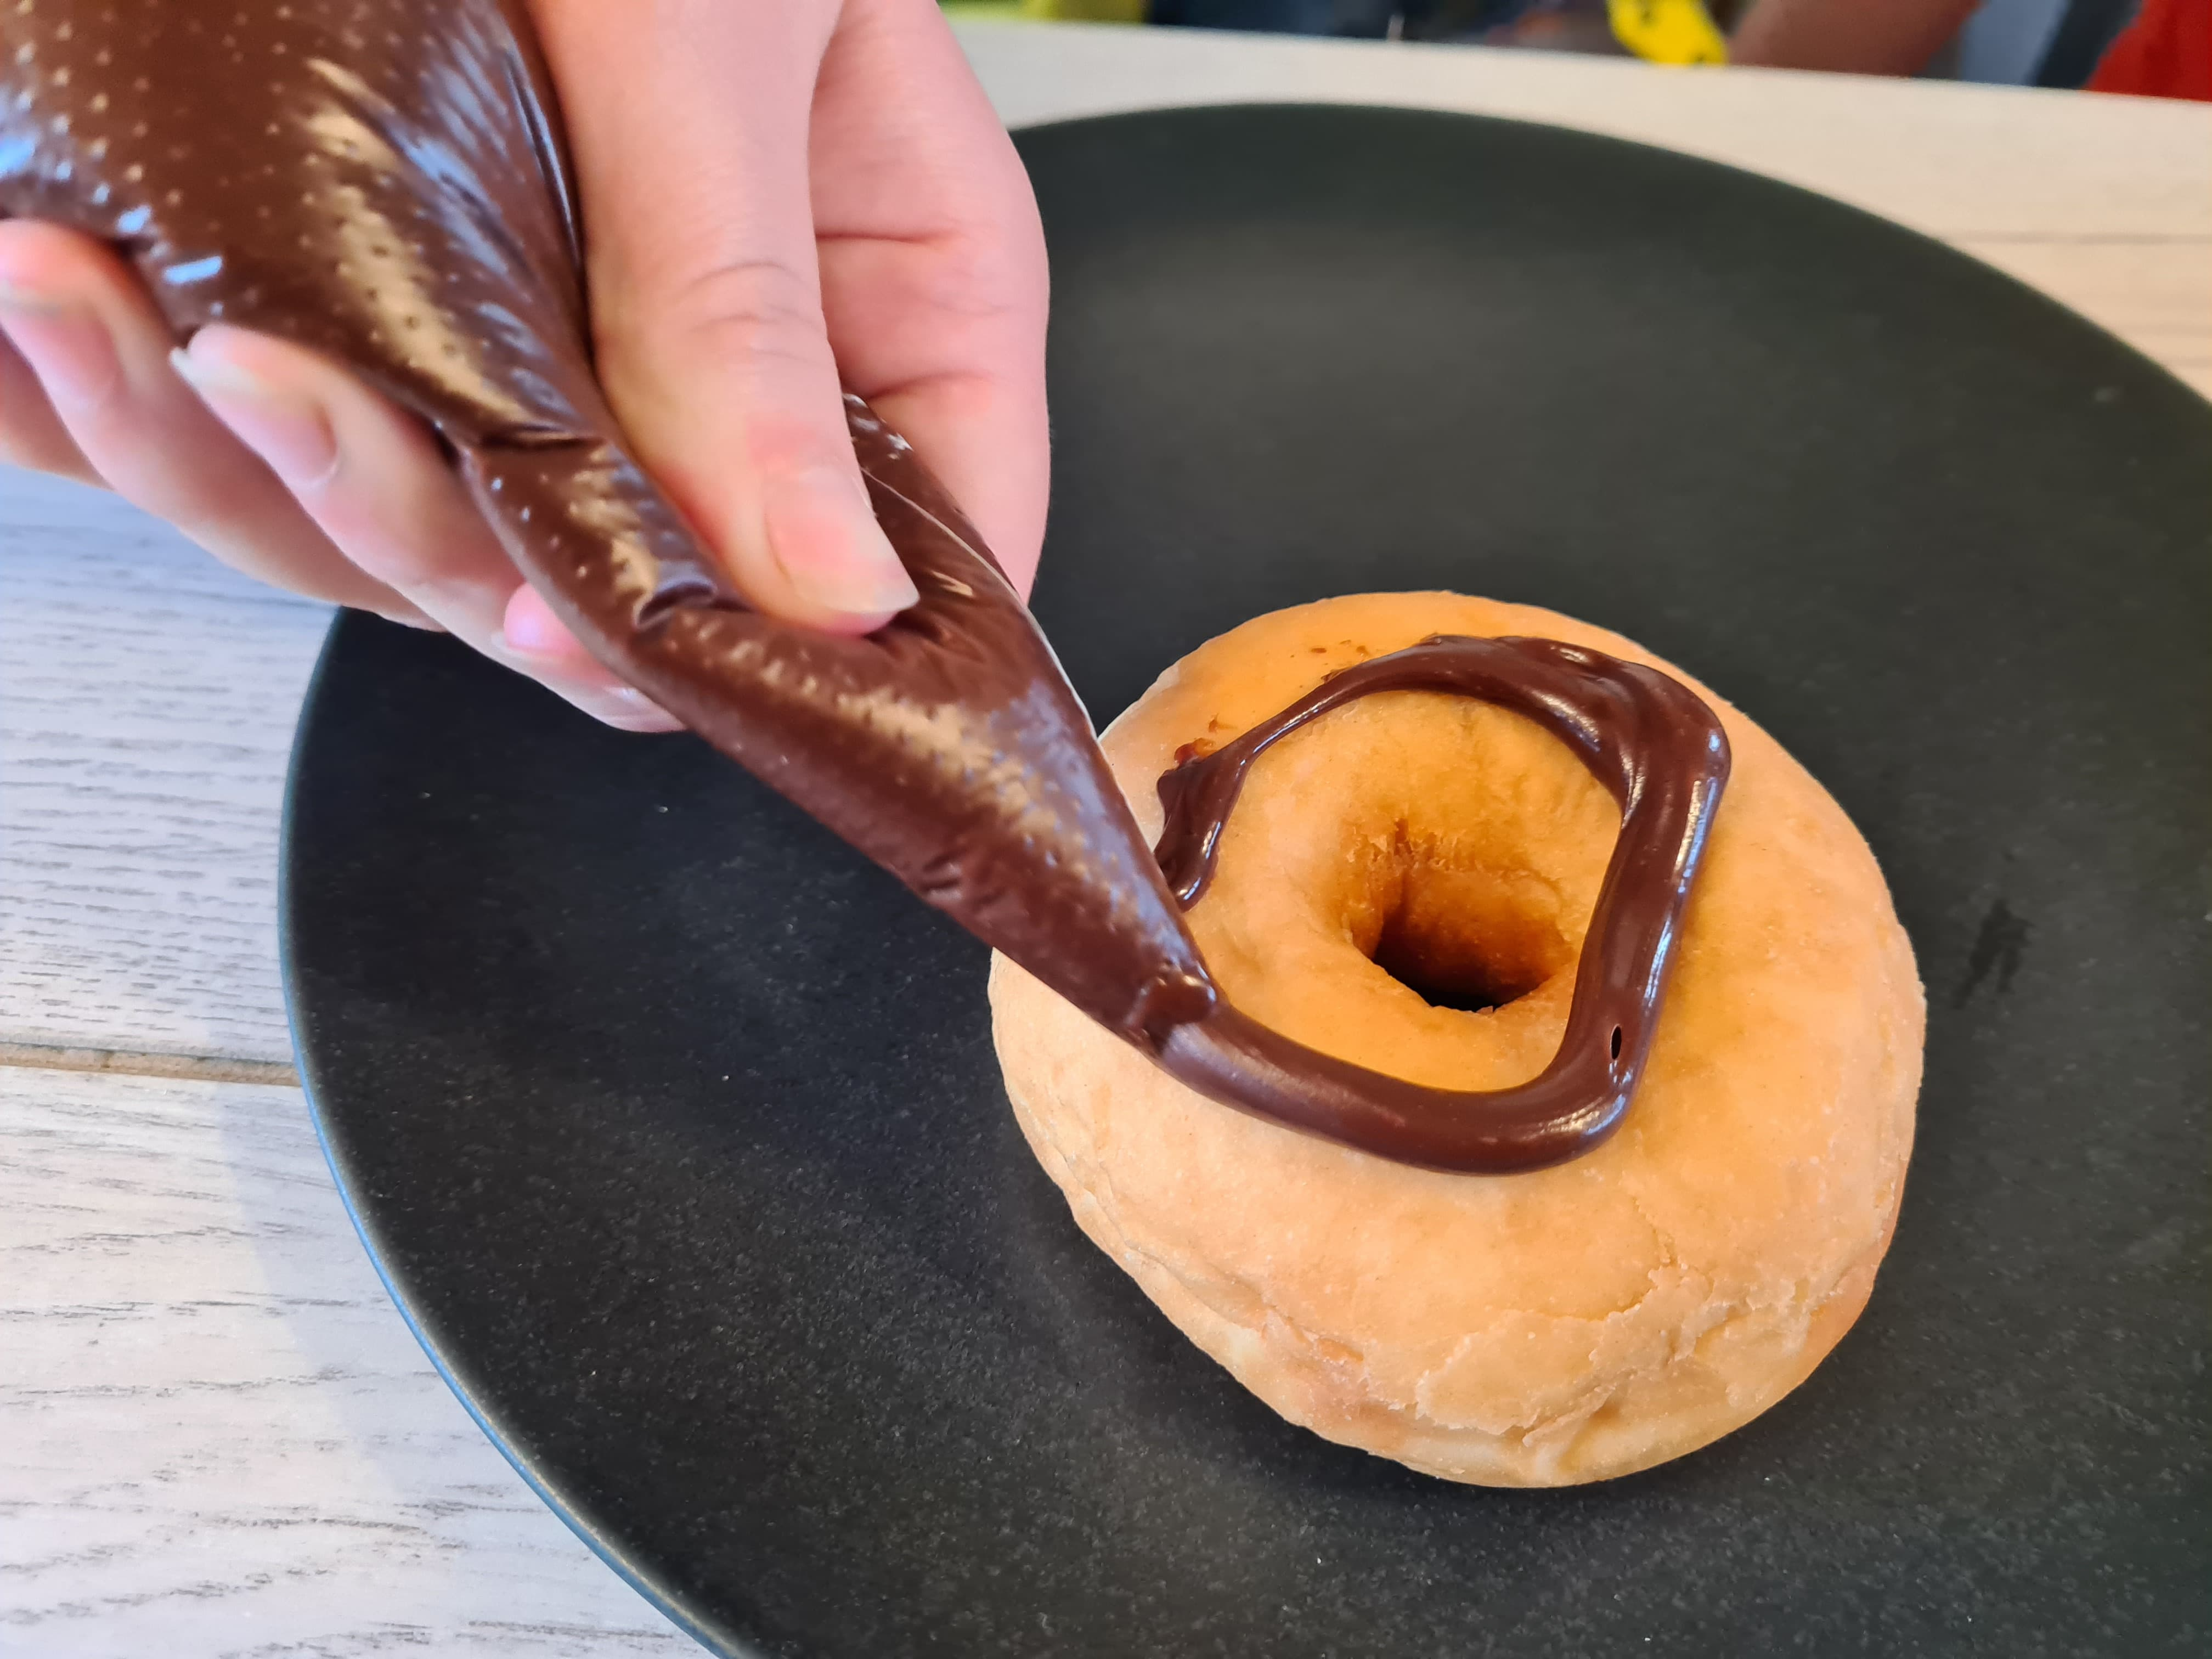 decorating a donut